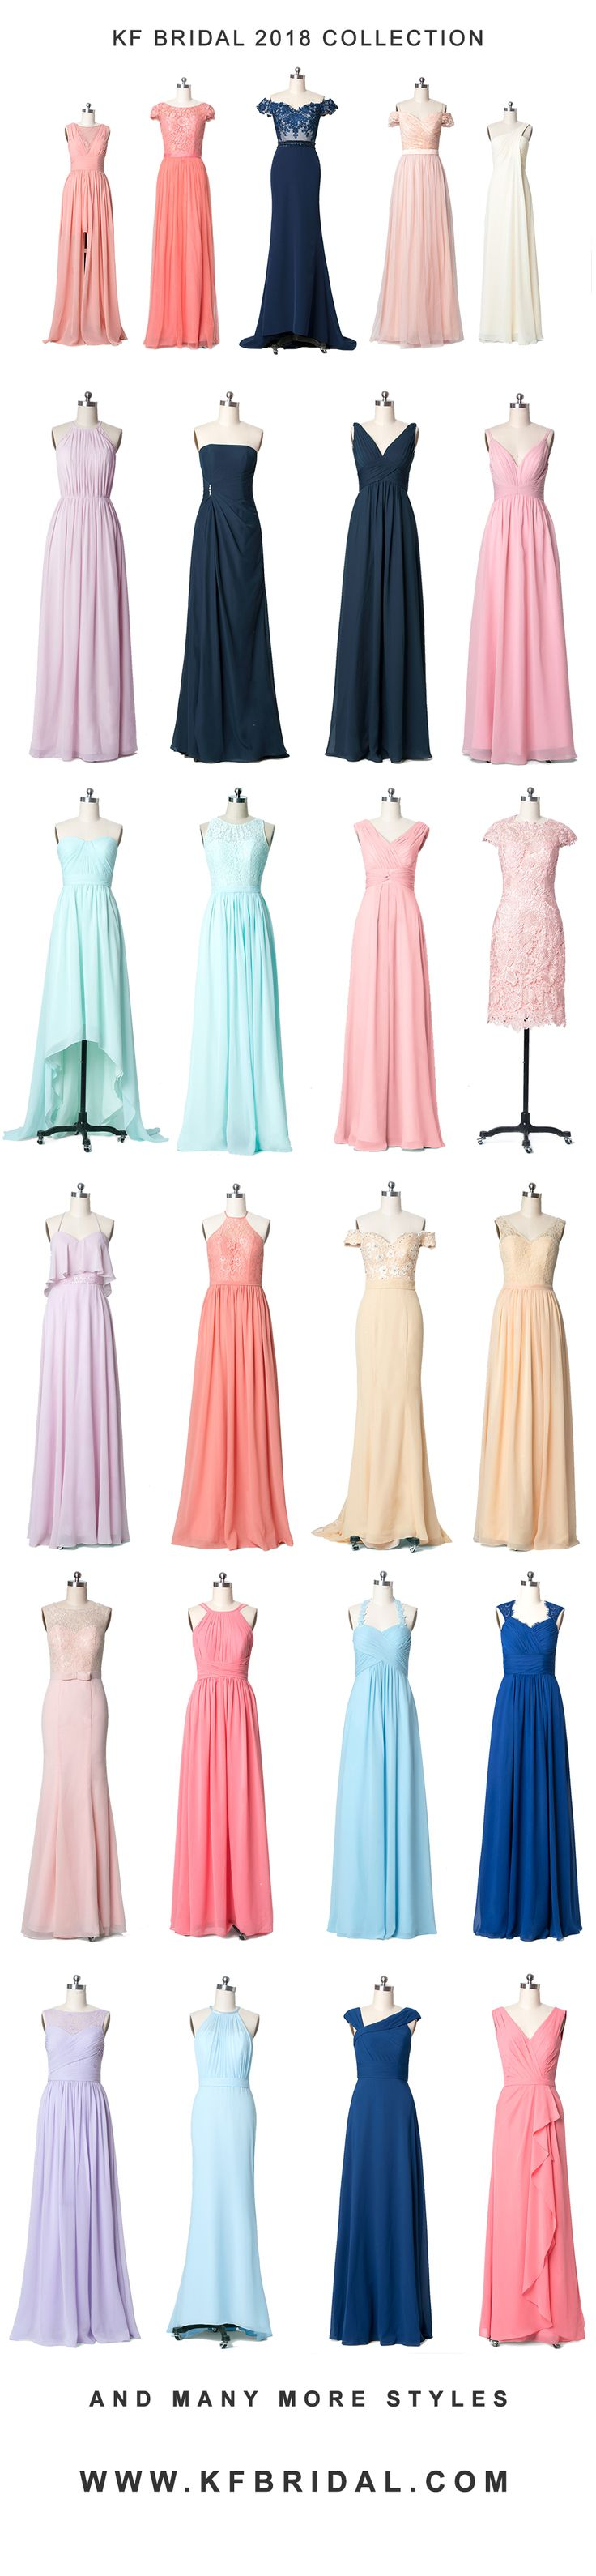 KF Bridal 2018 Collection Has Arrived!  All are up to 50% OFF  Free Shipping for all dresses!